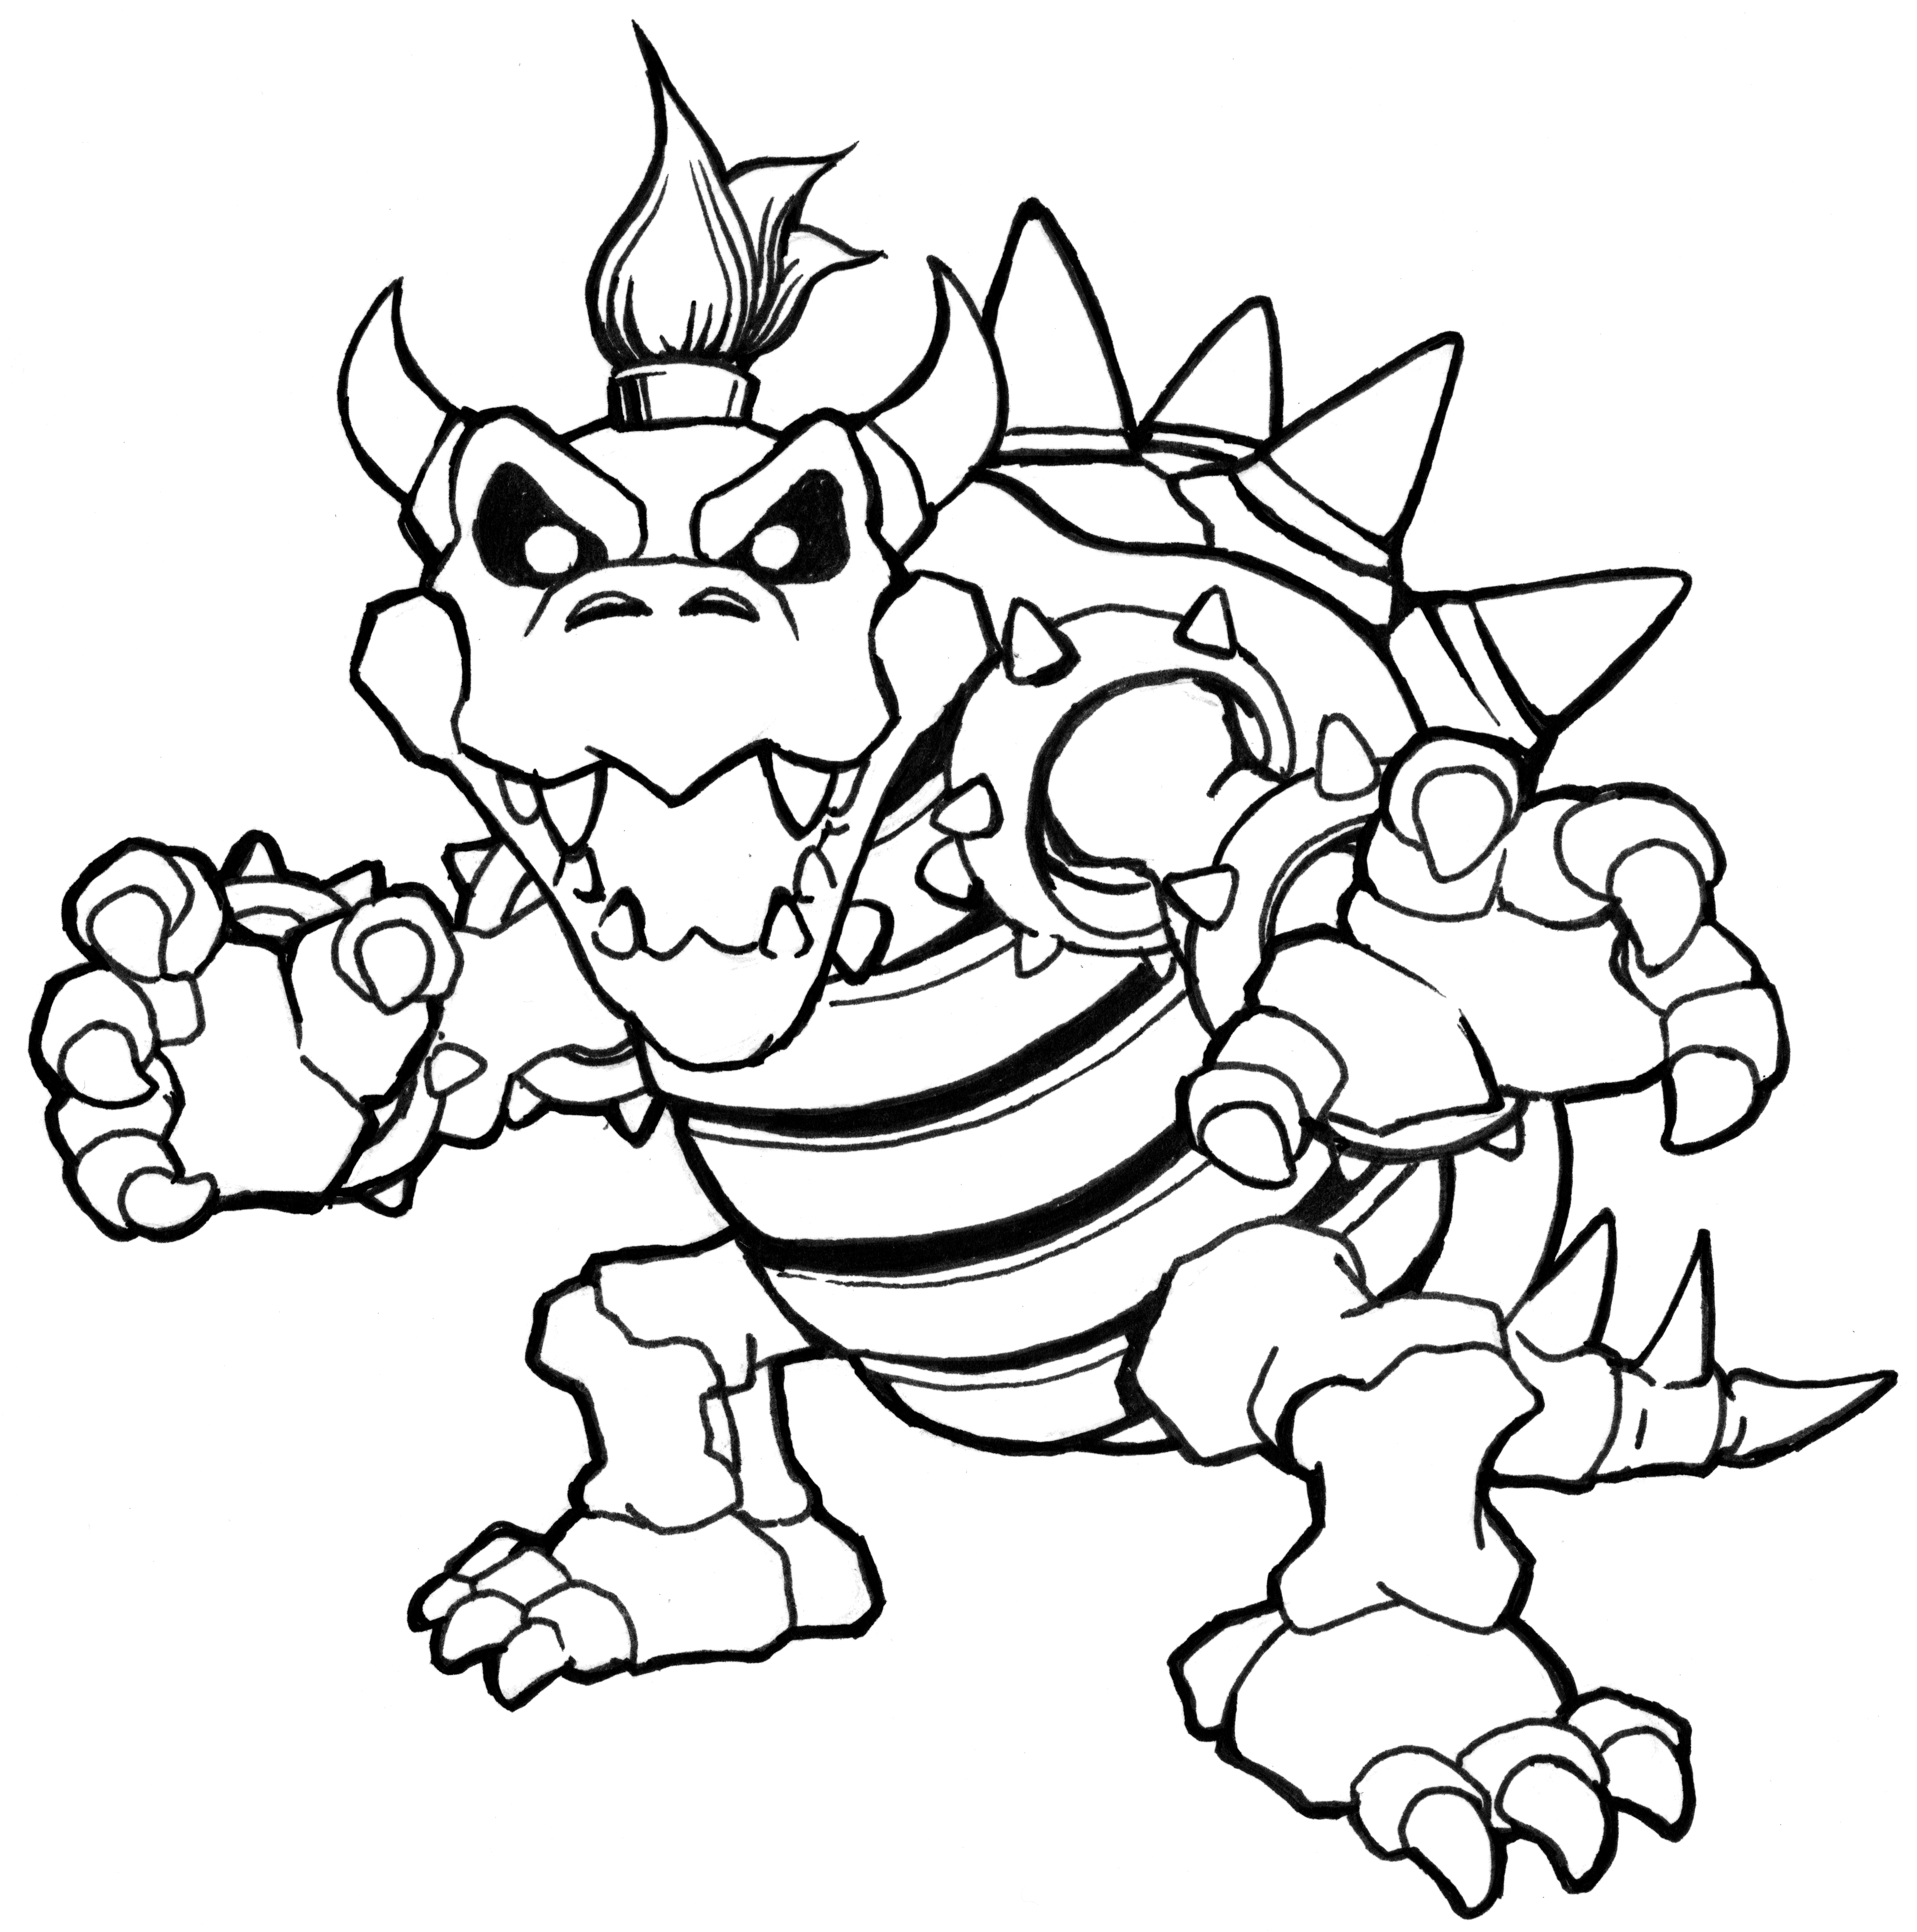 bowser coloring page -